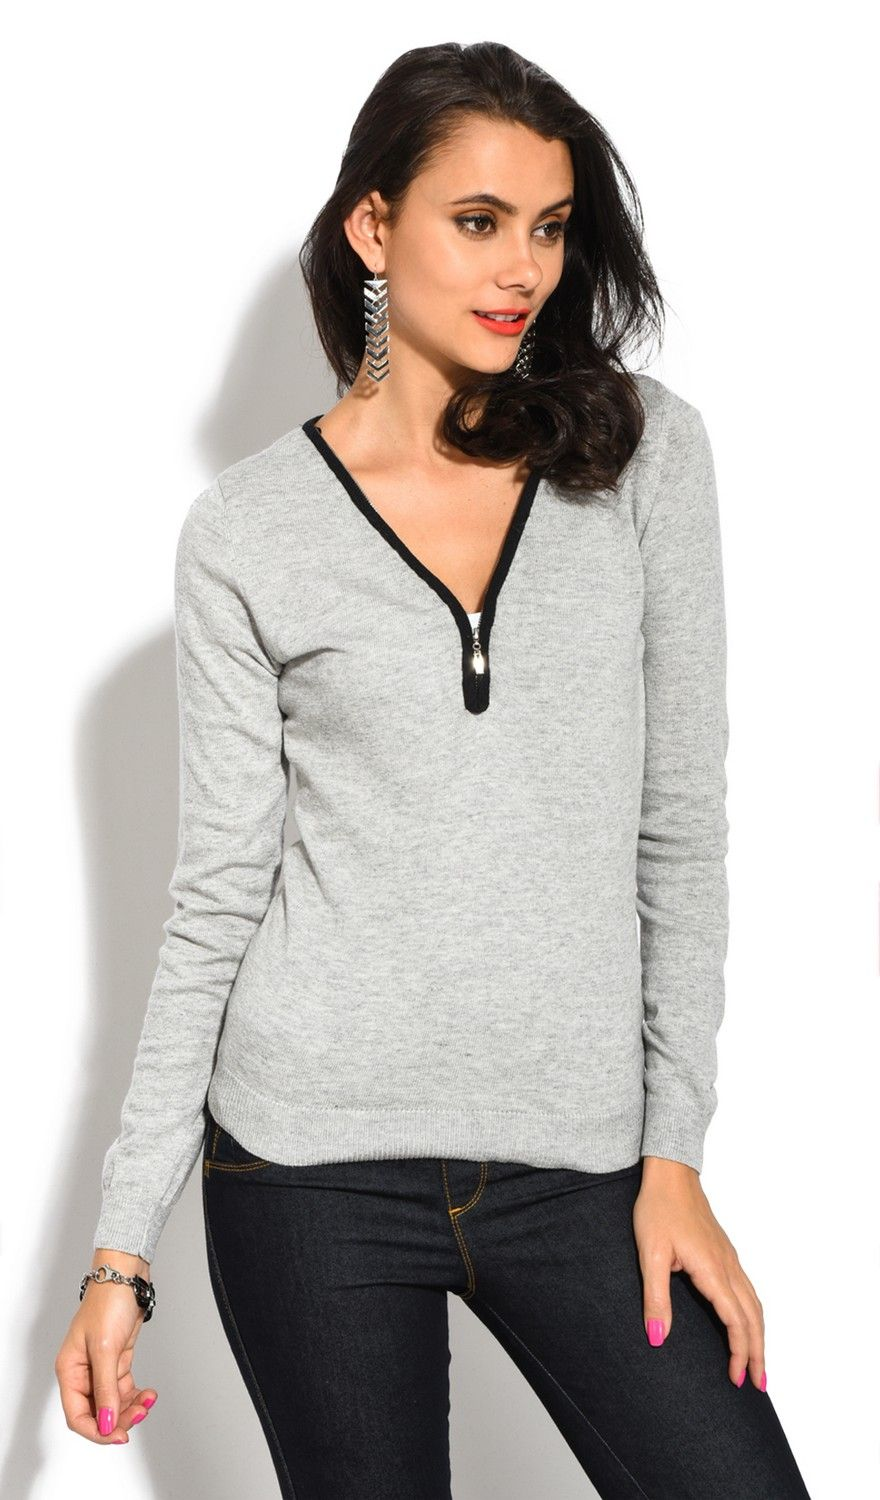 Assuili V-Neck Long Sleeve Two-tone Zip Detail Sweater in Light Grey